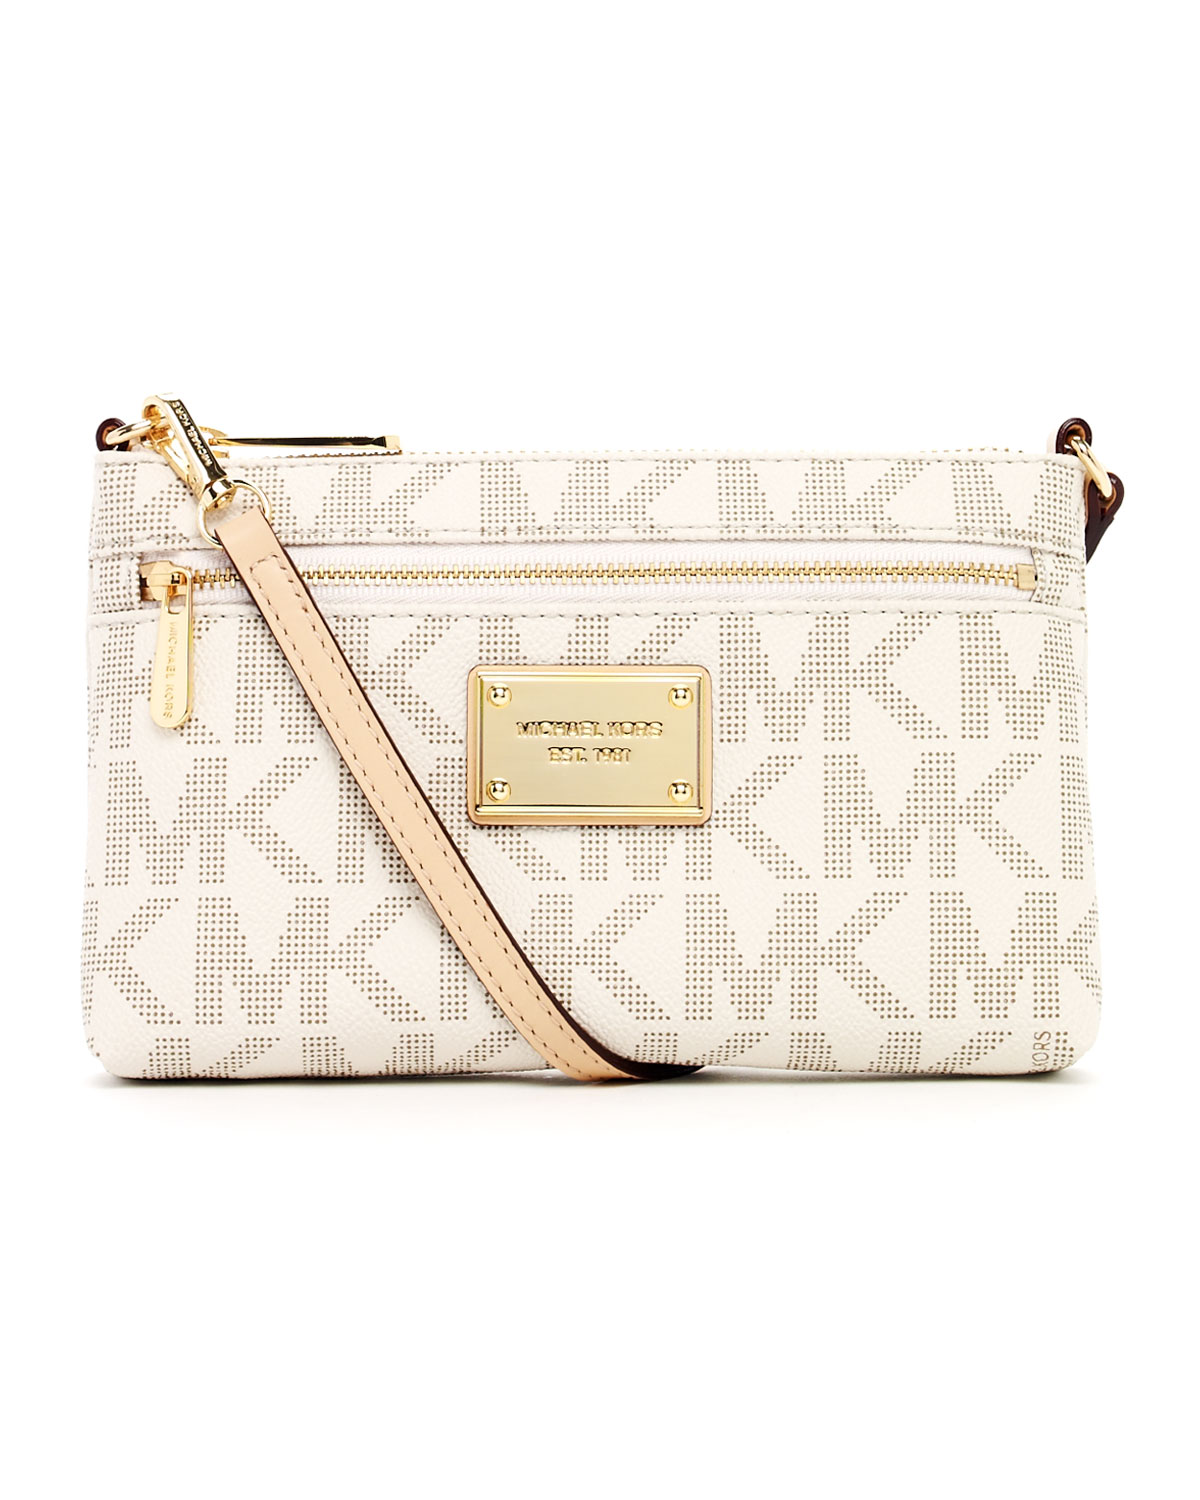 559204c210ac Lyst - Michael Kors Jet Set Large Monogram Wristlet in Natural